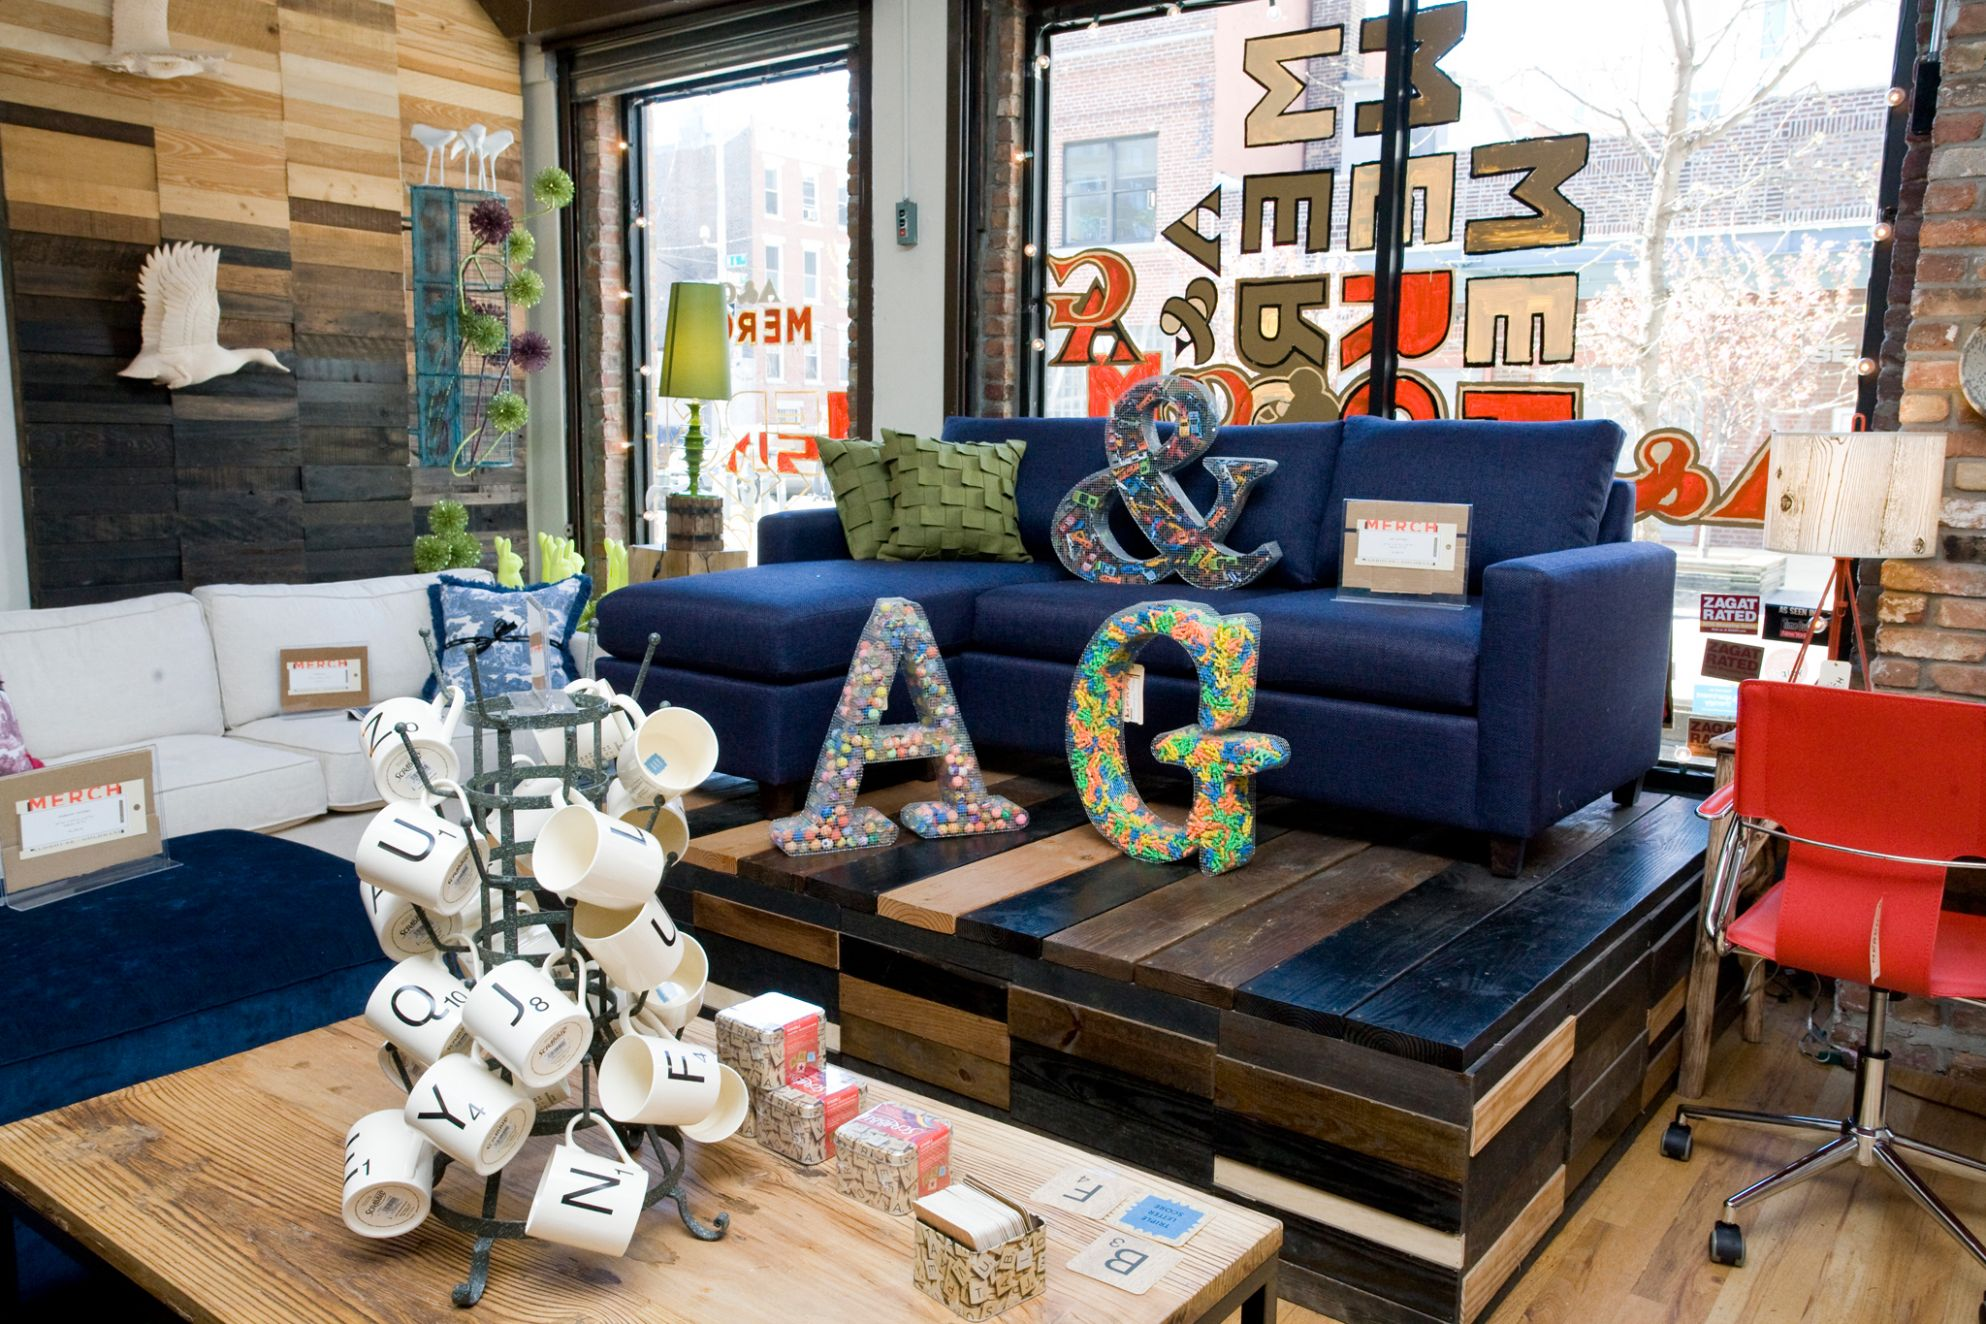 Home decor stores in NYC for decorating ideas and home furnishings - home decor store